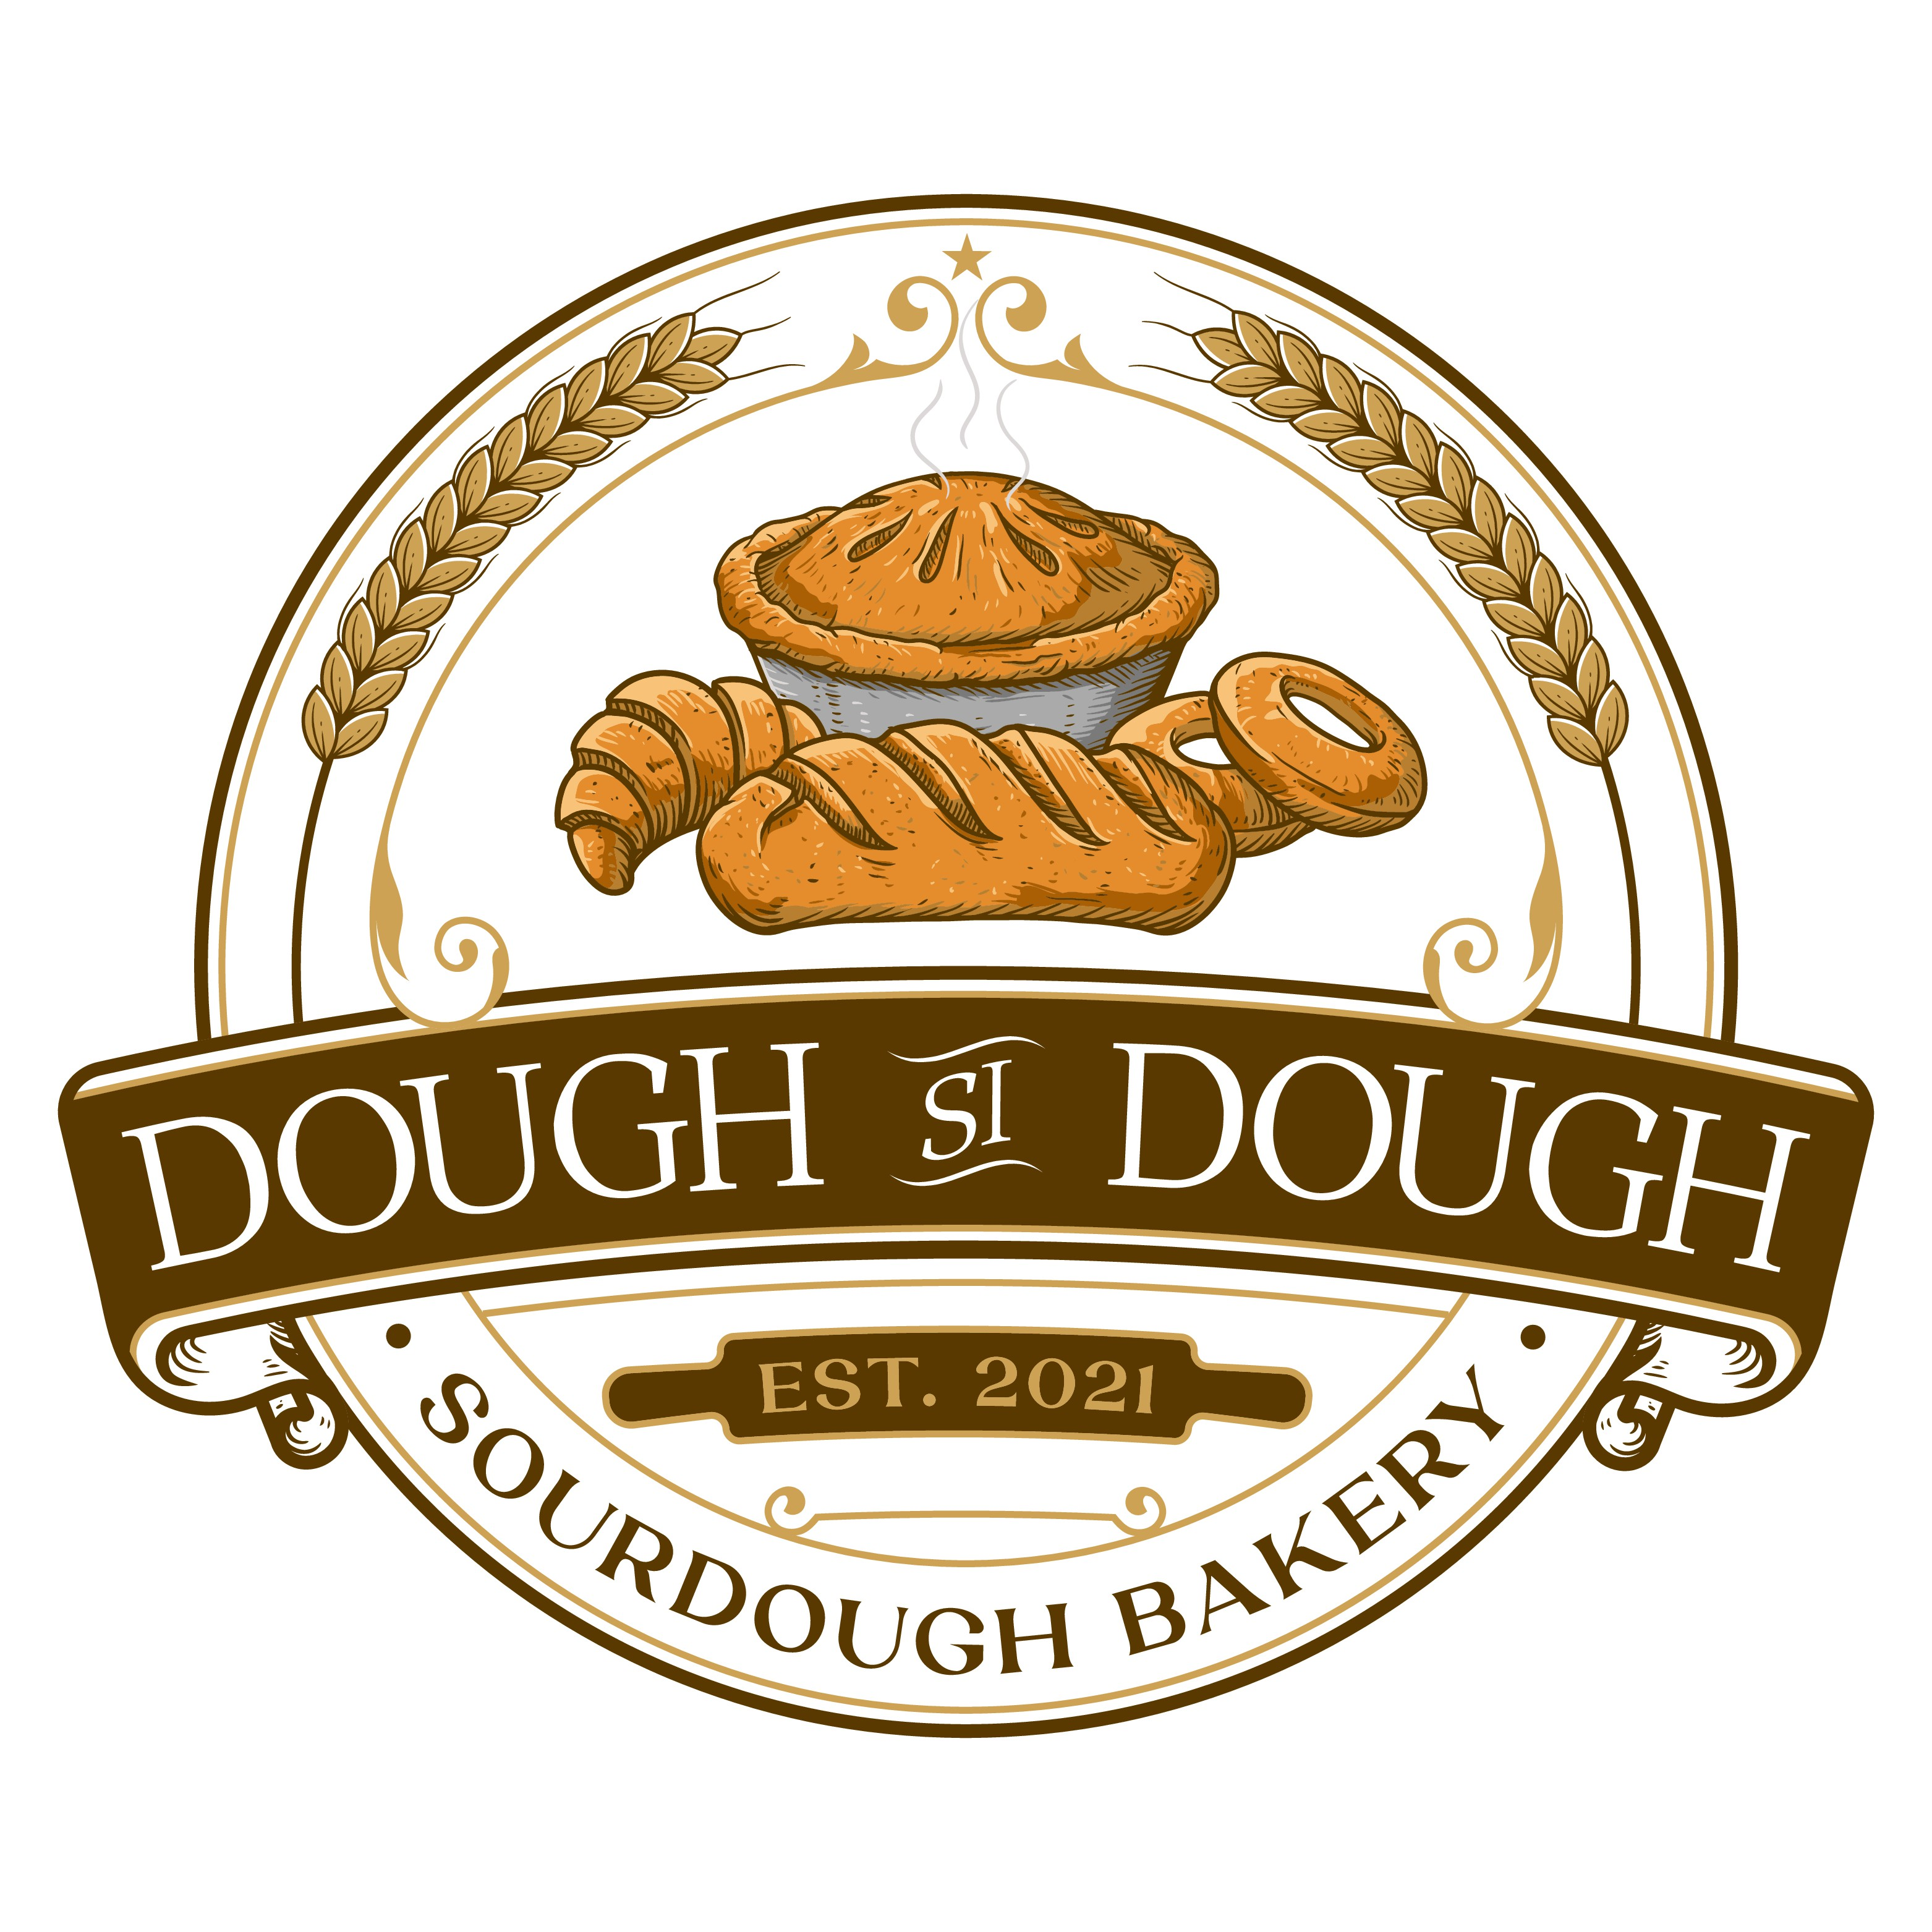 New and exciting sourdough bakery opening